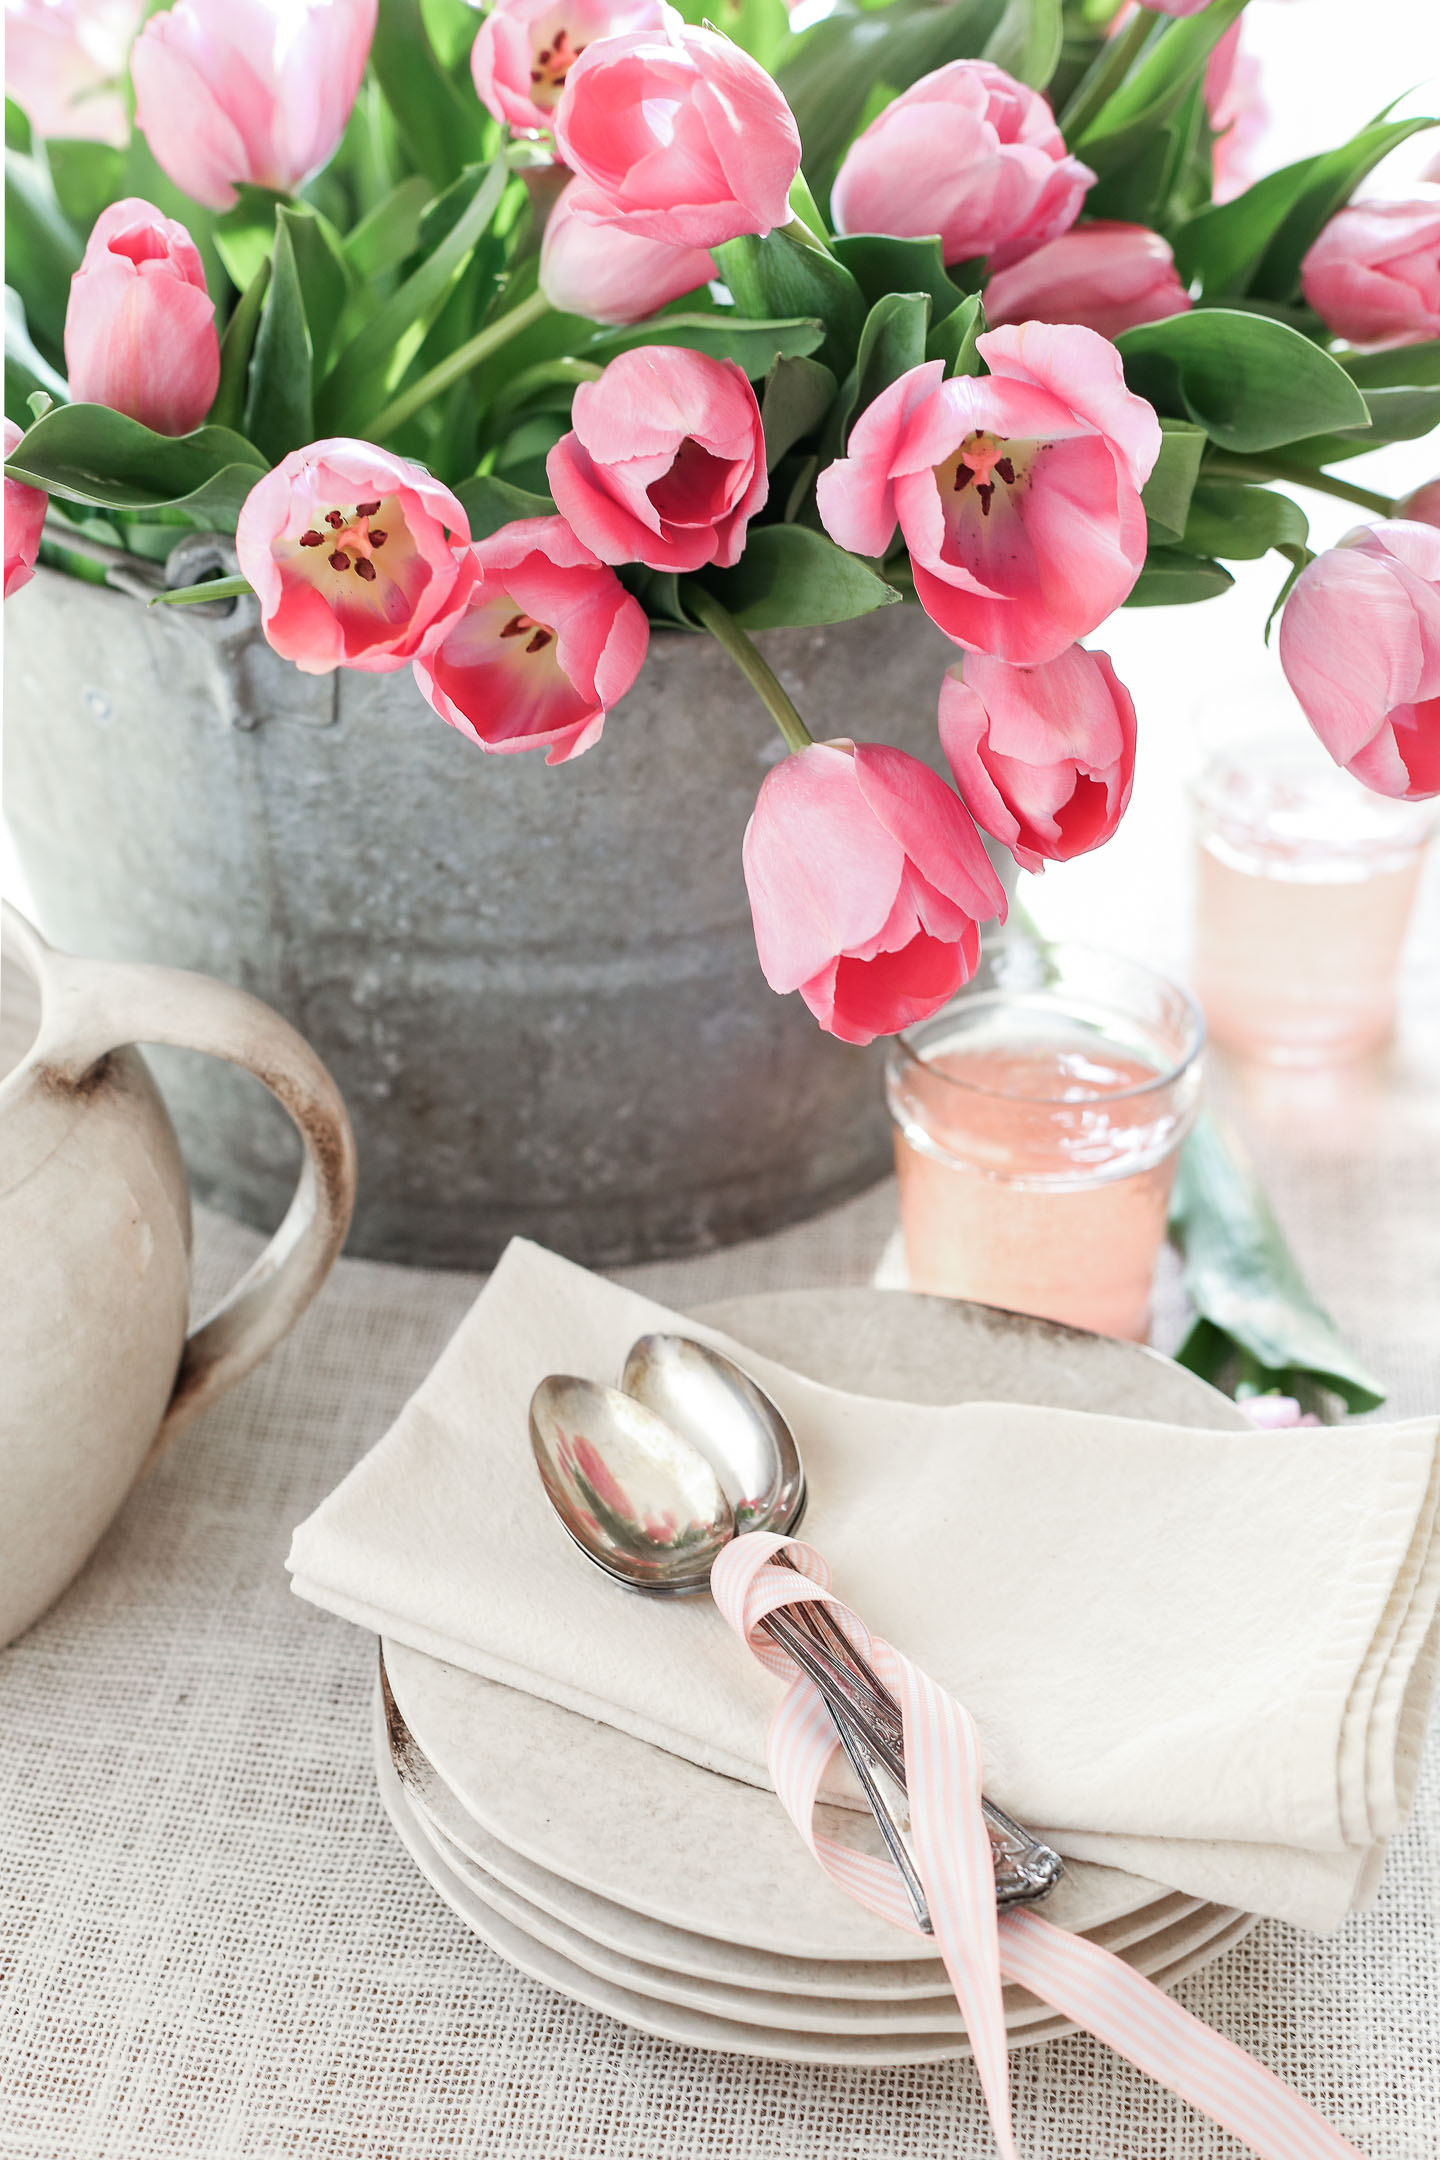 Pink tulips in a galvanized bucket on a table with plates and spoons.